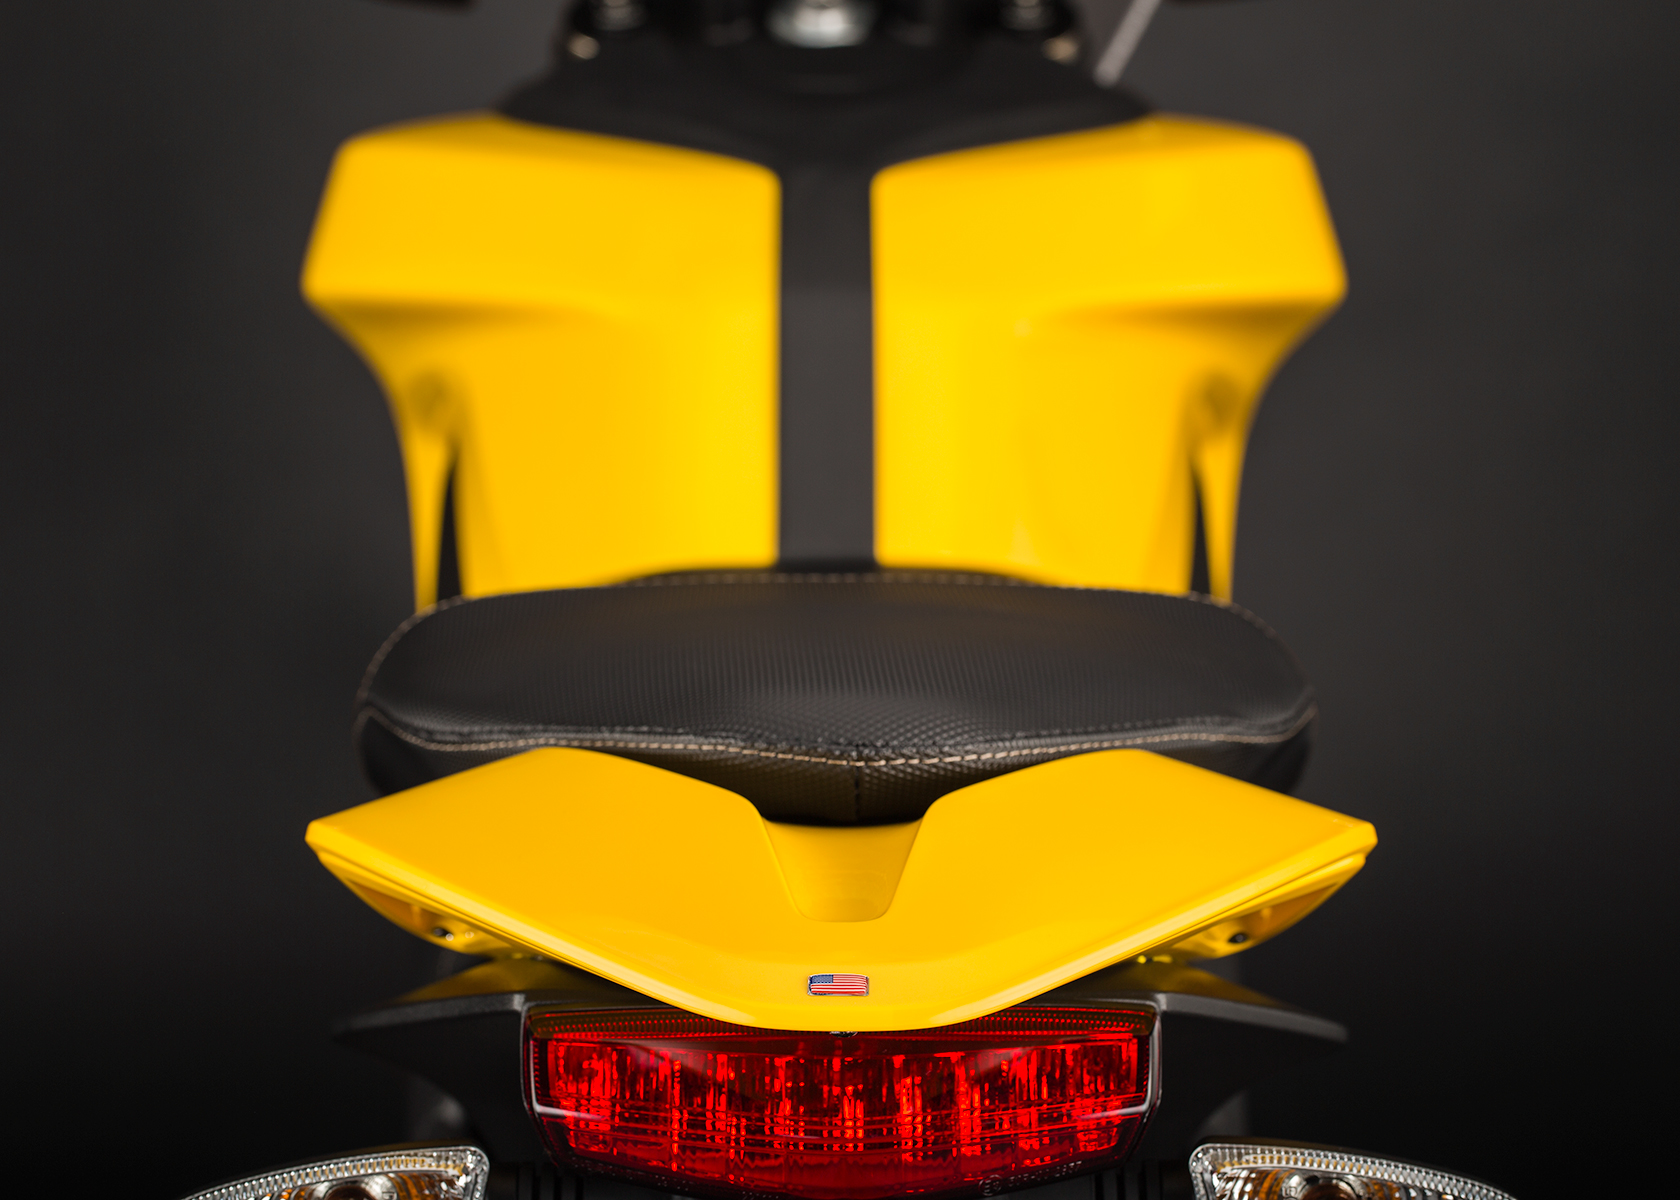 2014 Zero S Electric Motorcycle: Tail